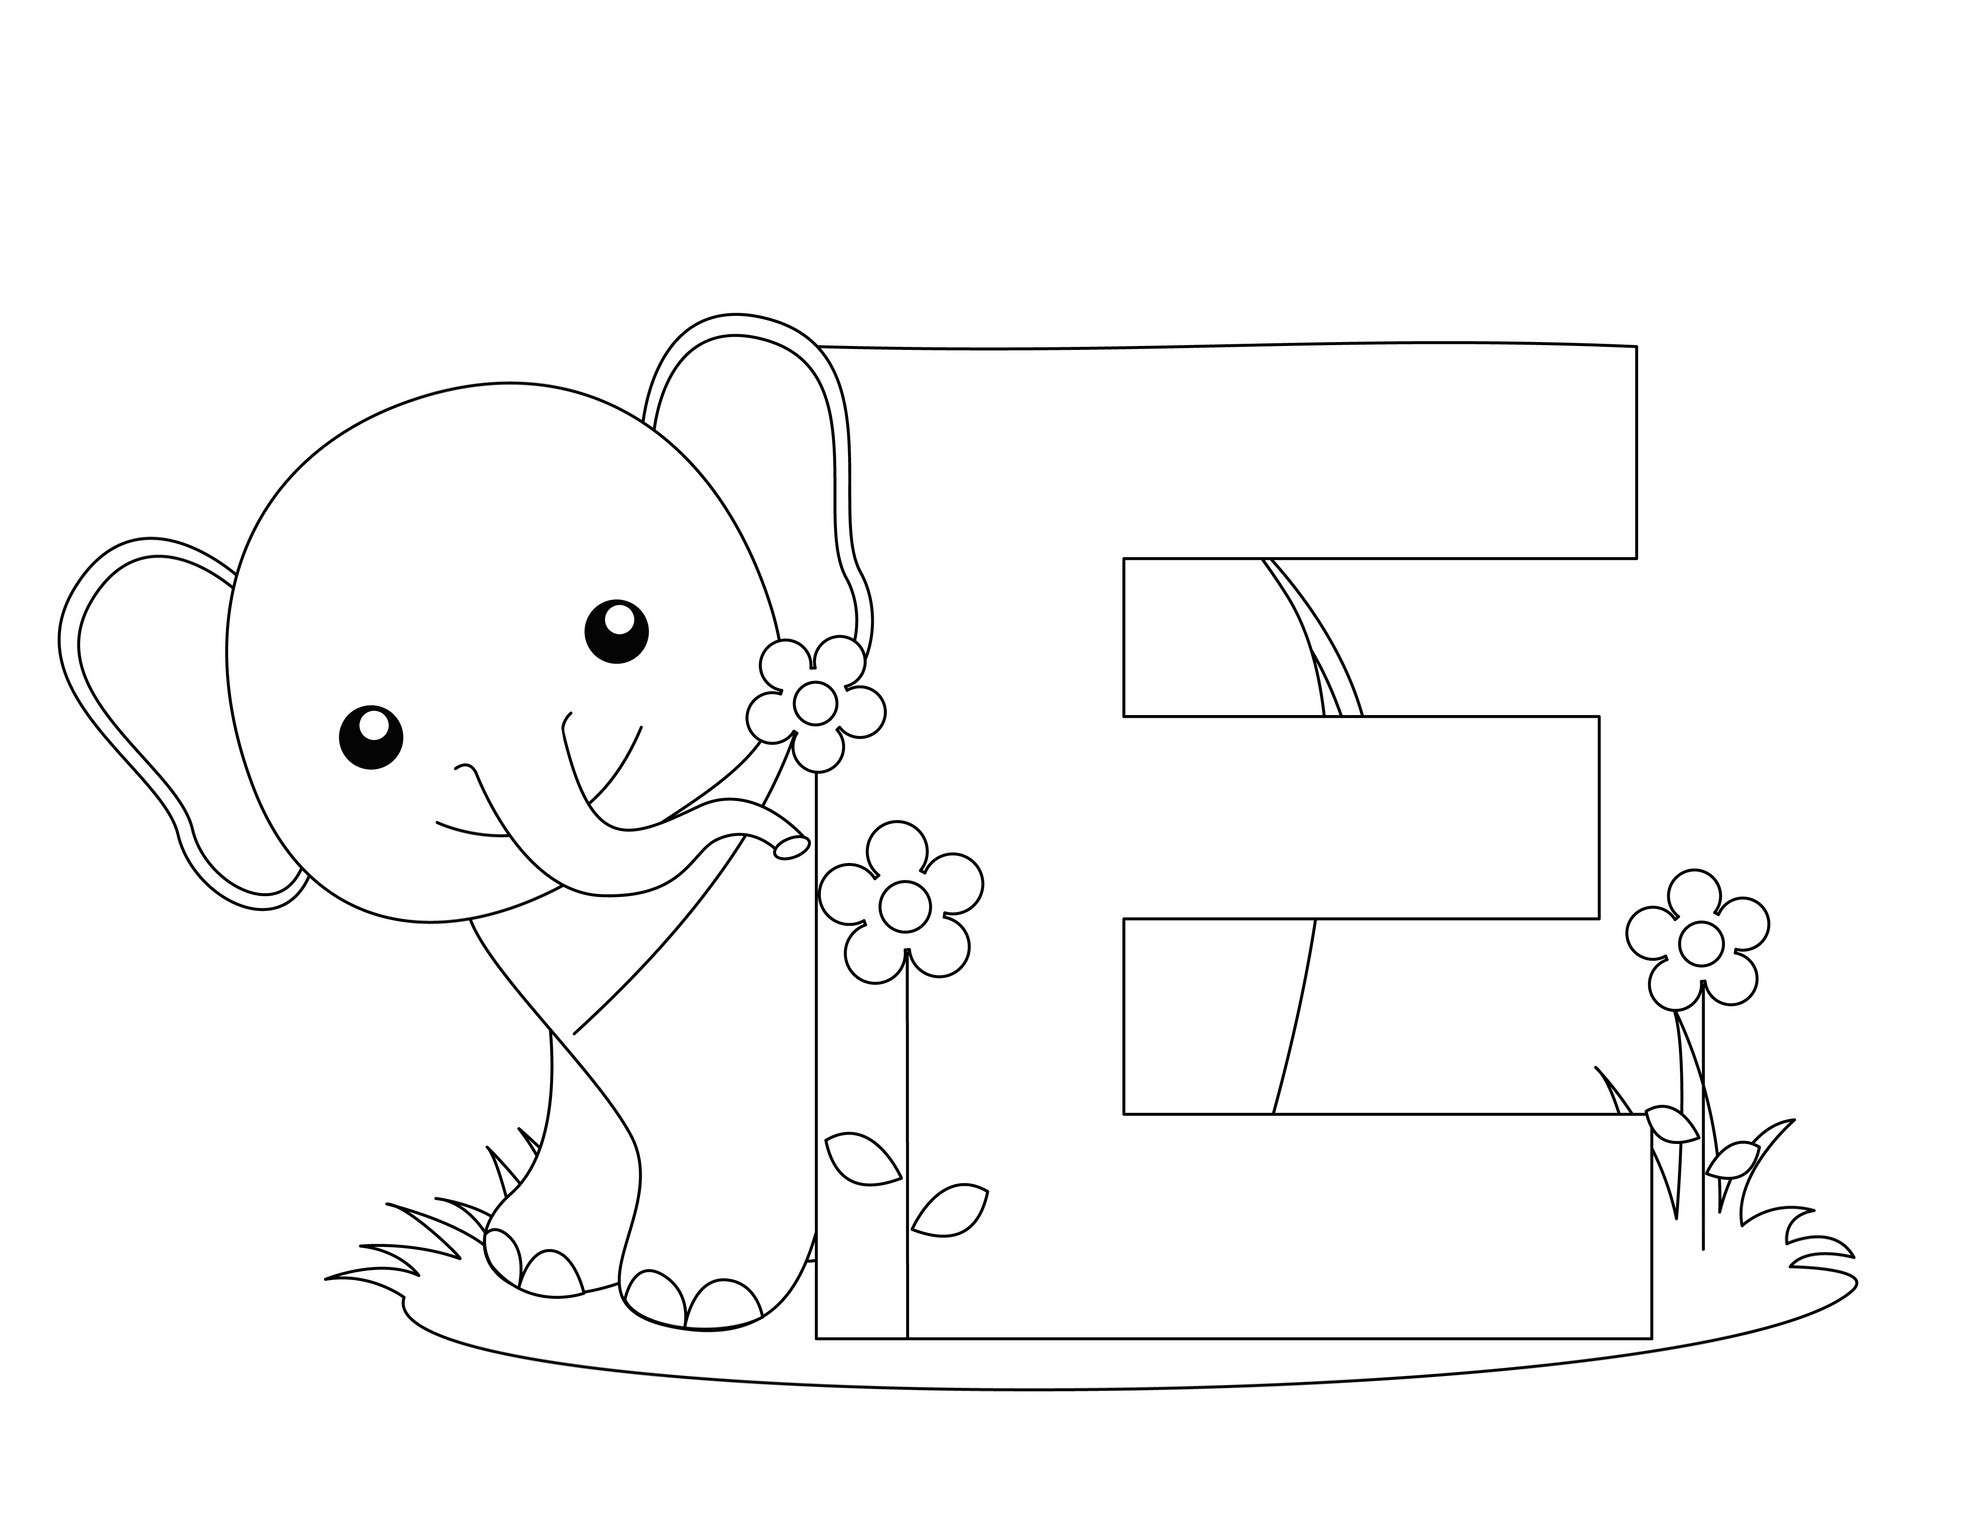 alphabet u coloring pages - photo#13